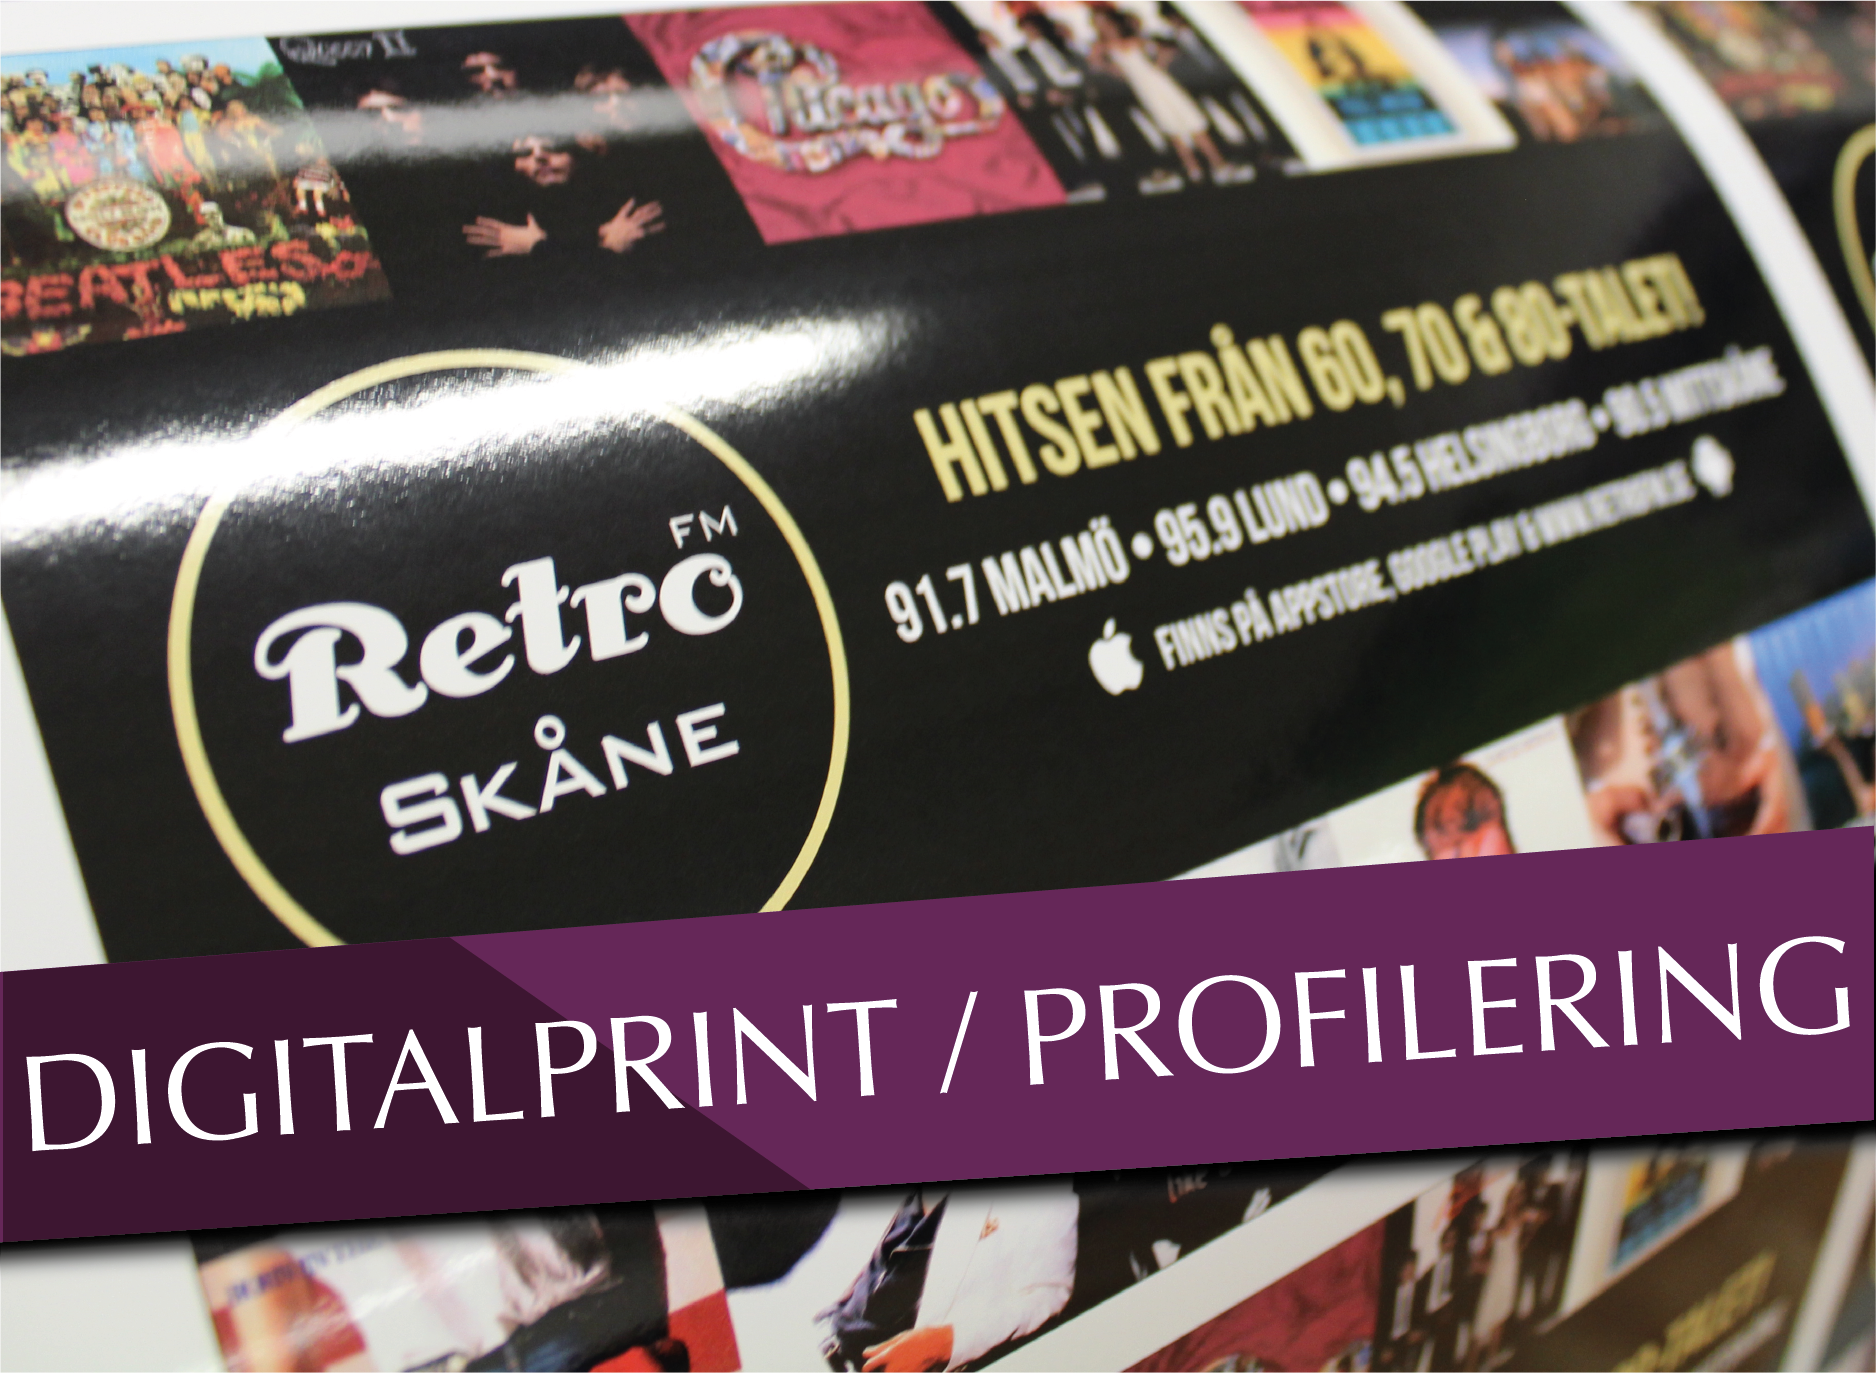 profilering digitalprint